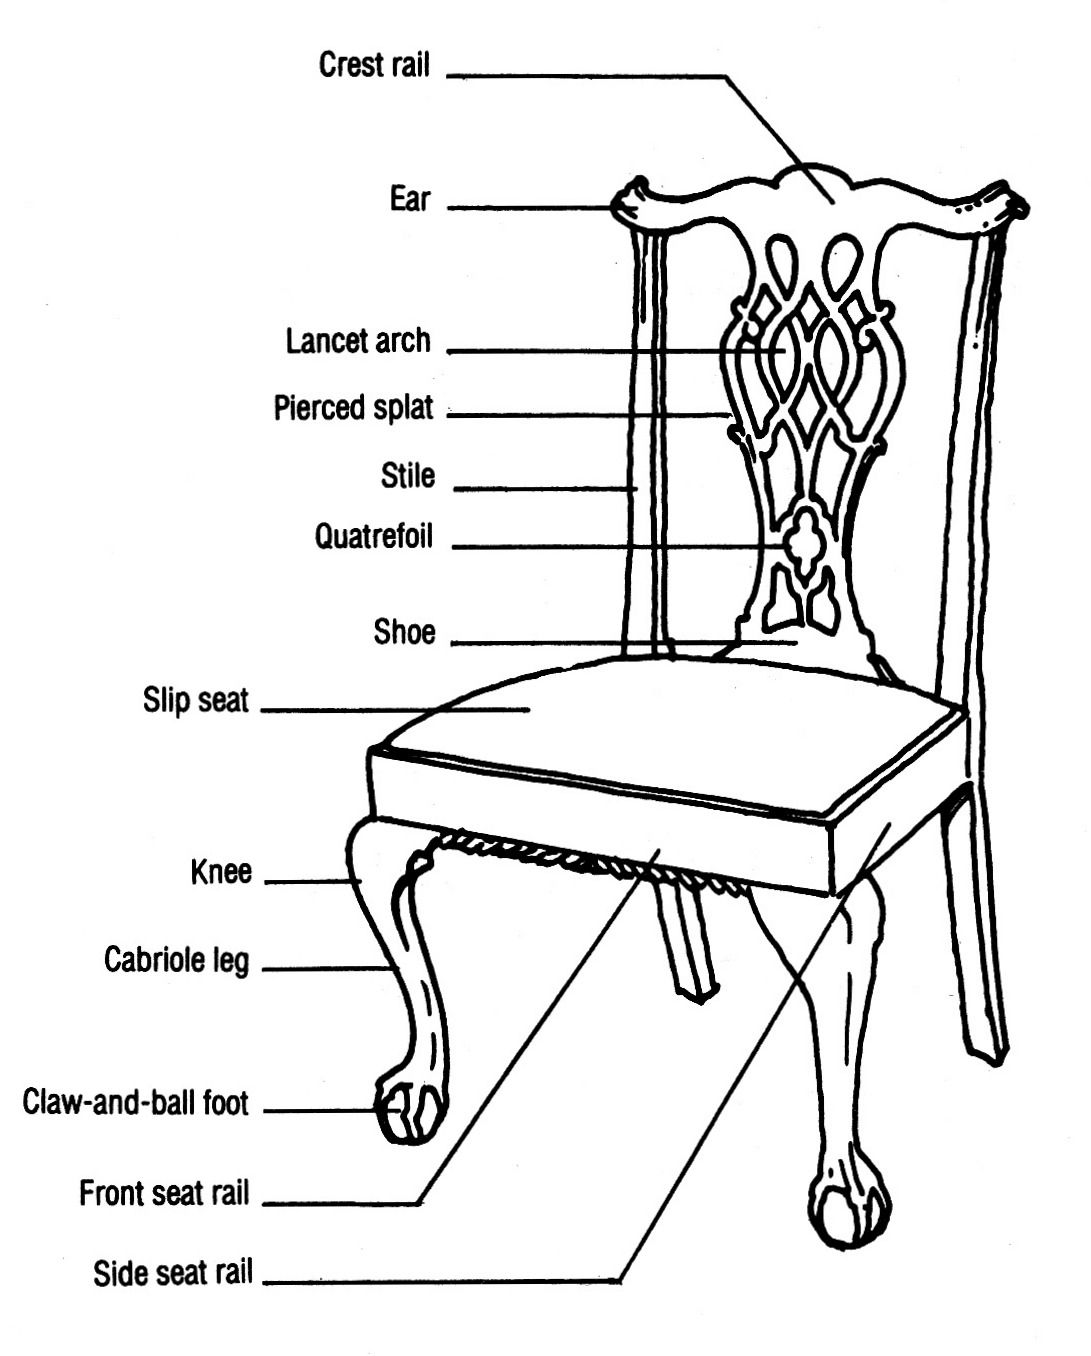 Diagram of Chippendale side chair from New York (1755 - 1795). - Diagram Of Chippendale Side Chair From New York (1755 - 1795